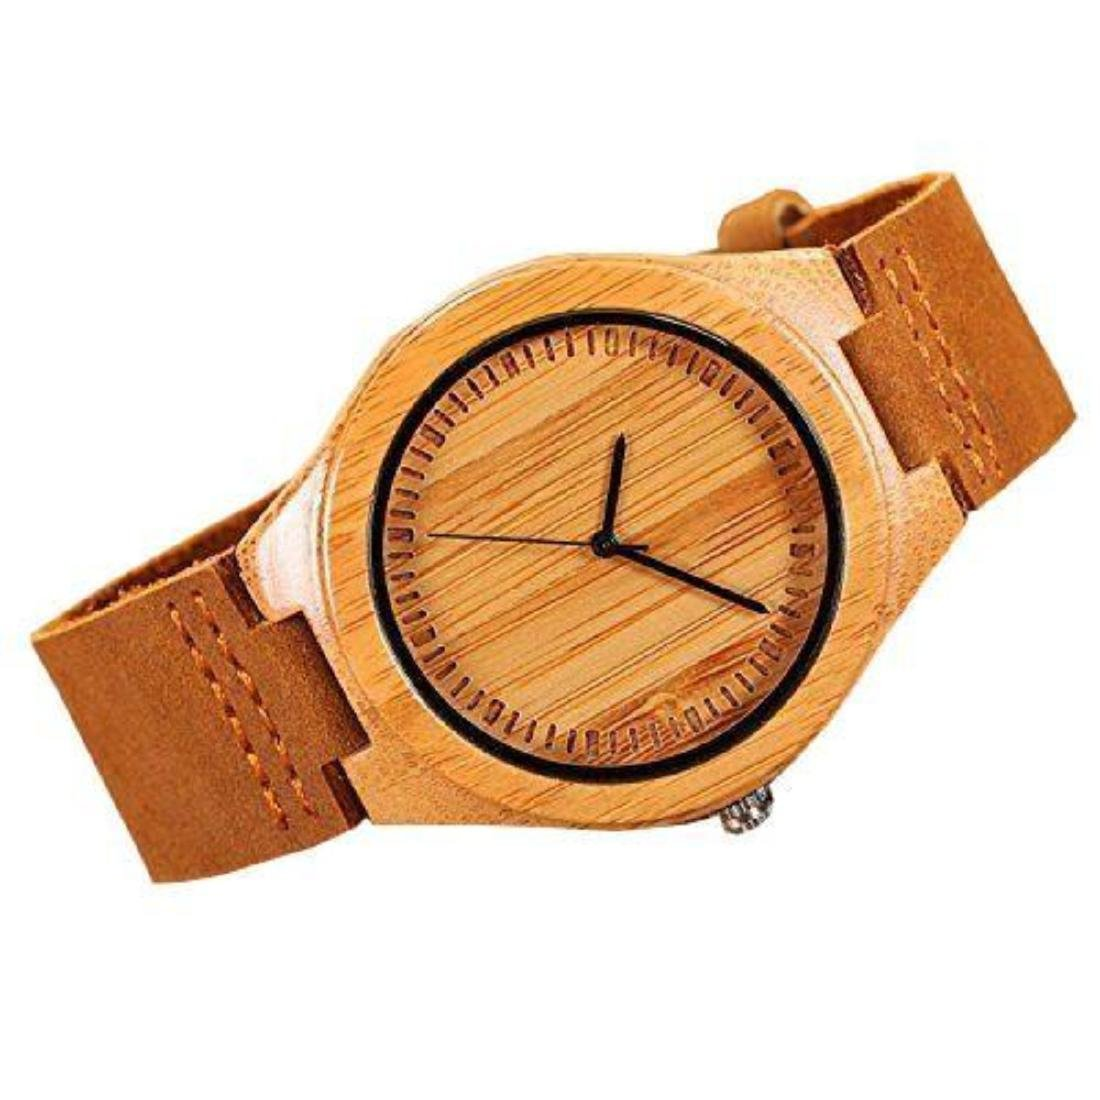 Cucol Wrist Watches Men's Bamboo Wooden With Brown - 2